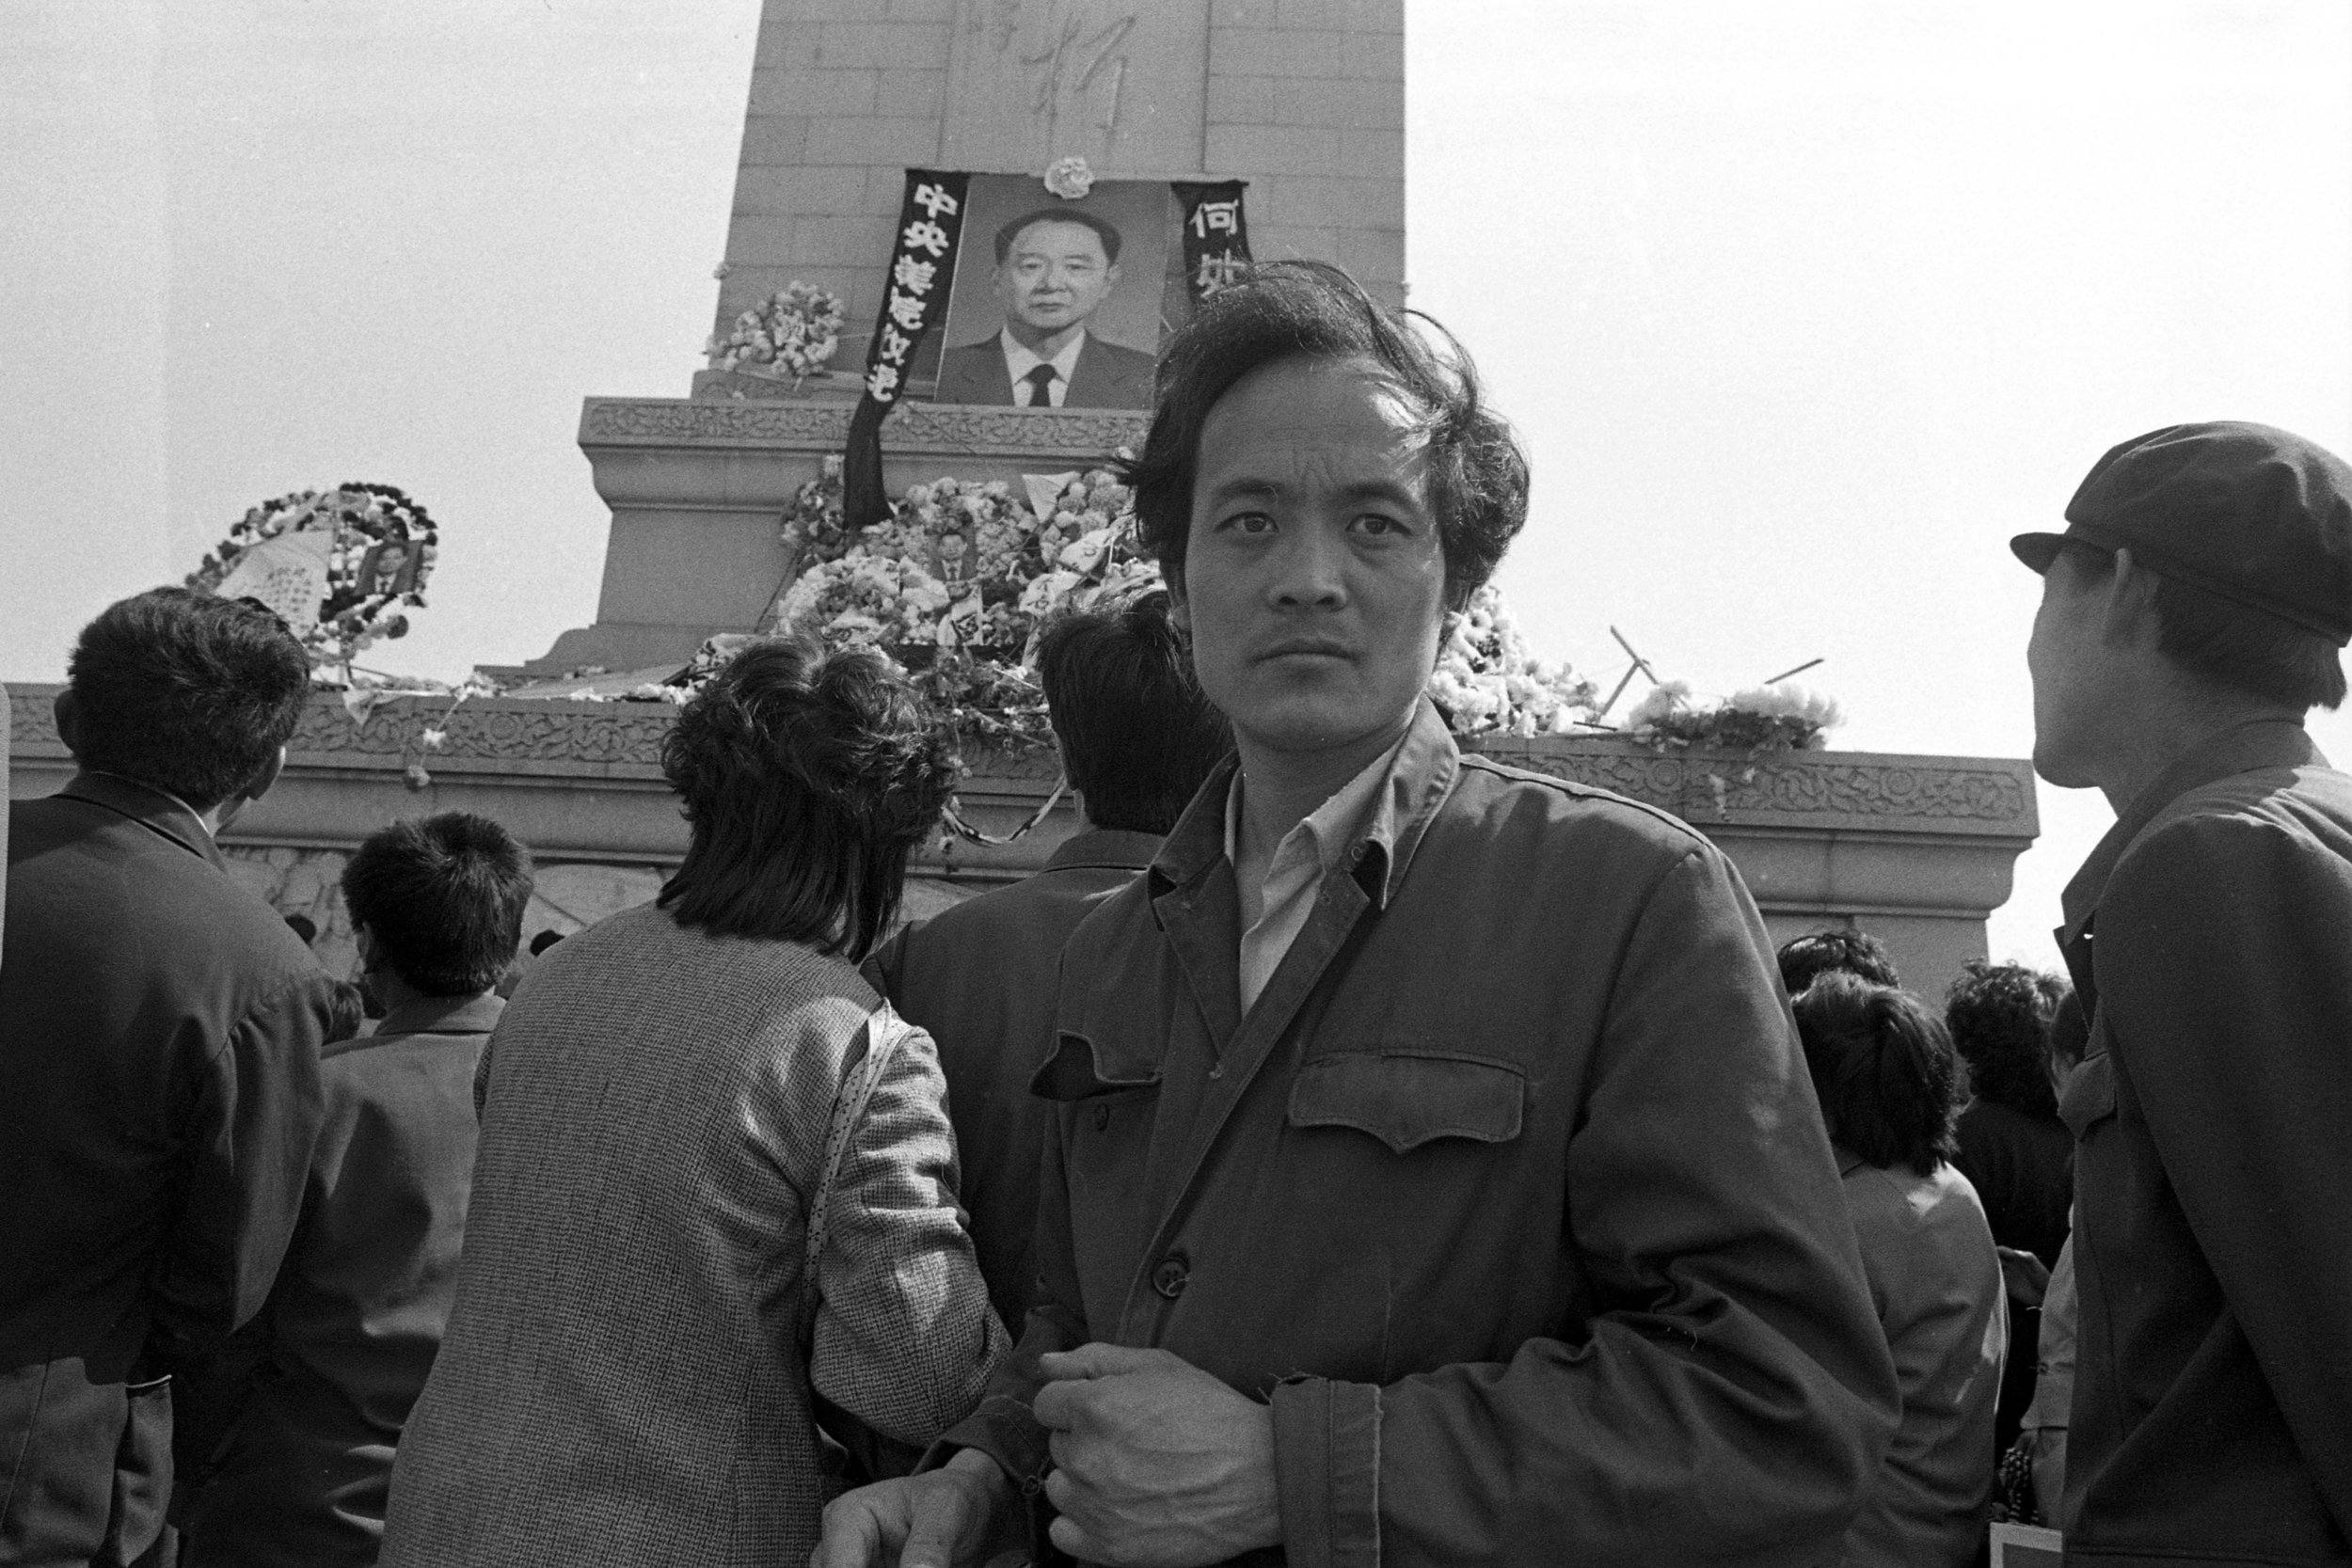 A young man looks on with a photo of former CCP general-secretary Hu Yaobang leaning against the Monument to the People's Heroes in the background. Photo taken on April 25, 1989. Photo credit: Hsieh San-tai, Howling 1989.